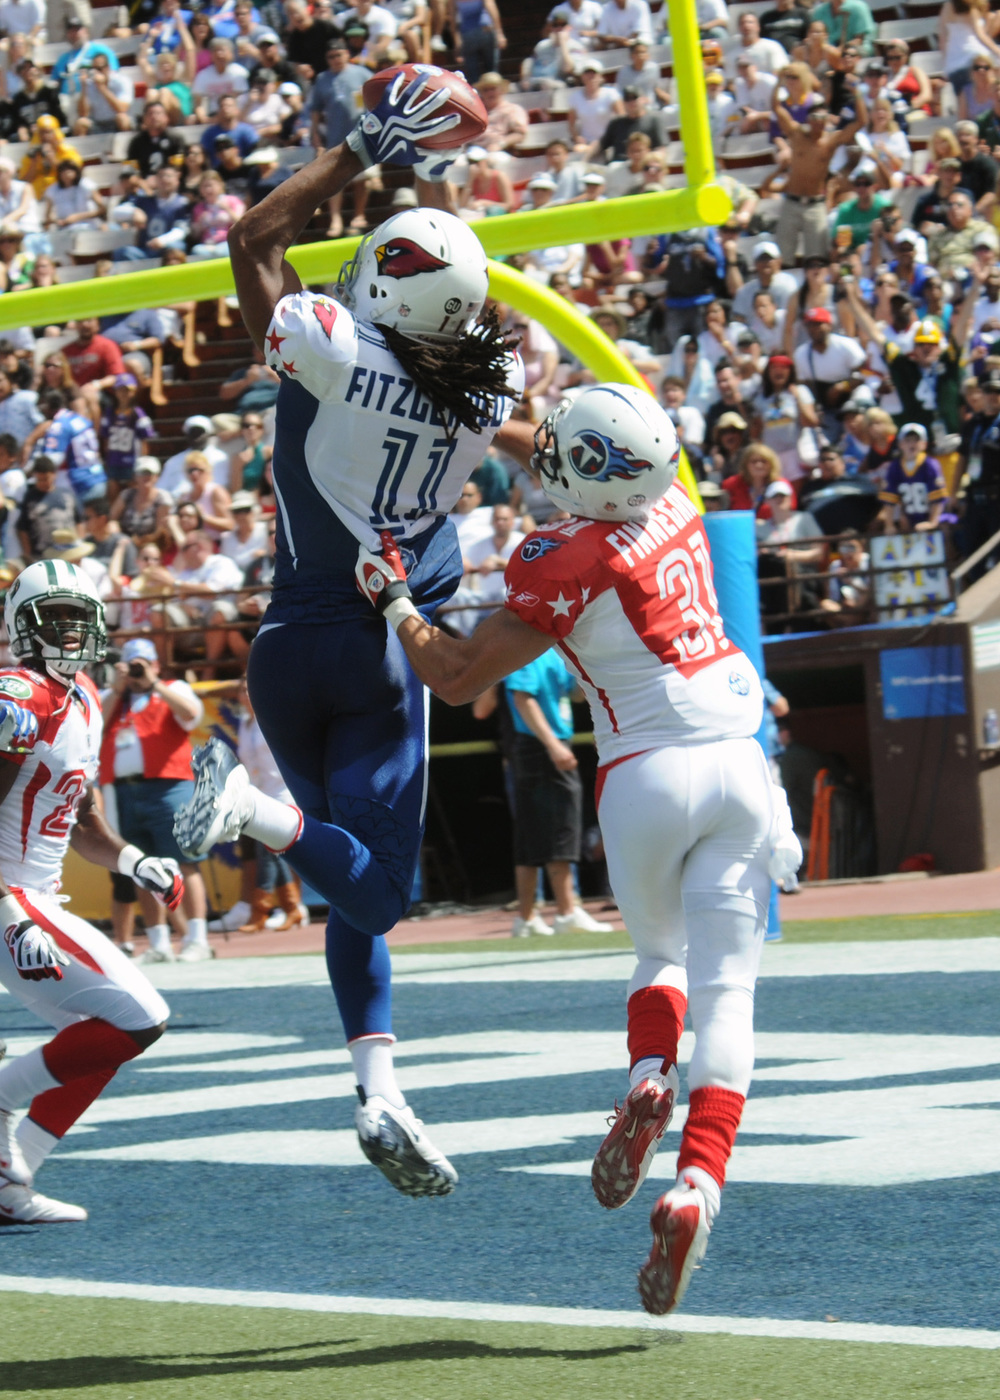 Larry_Fitzgerald_catches_TD_at_2009_Pro_Bowl.jpg